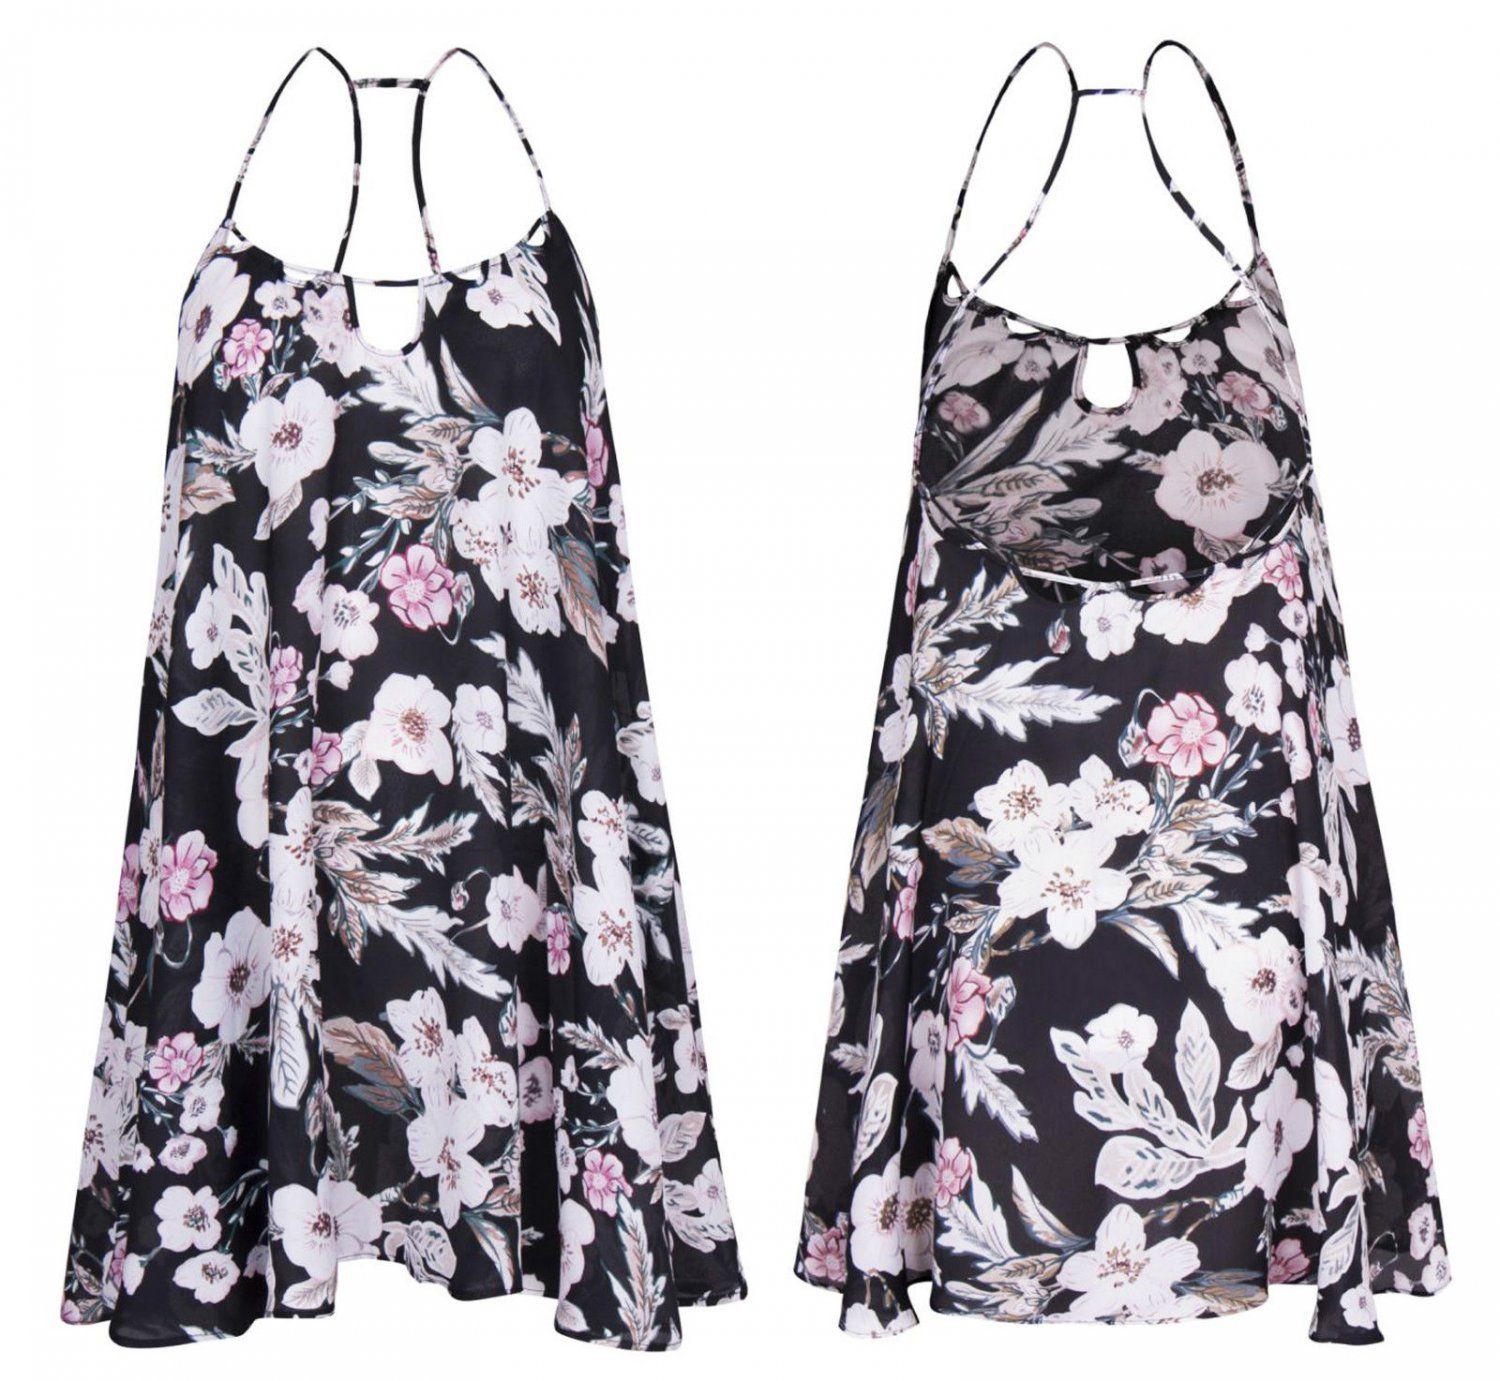 Women Floral Print Asymmetric Sumner Sleeveless Loose A Line Swing Dress UK(8-14)